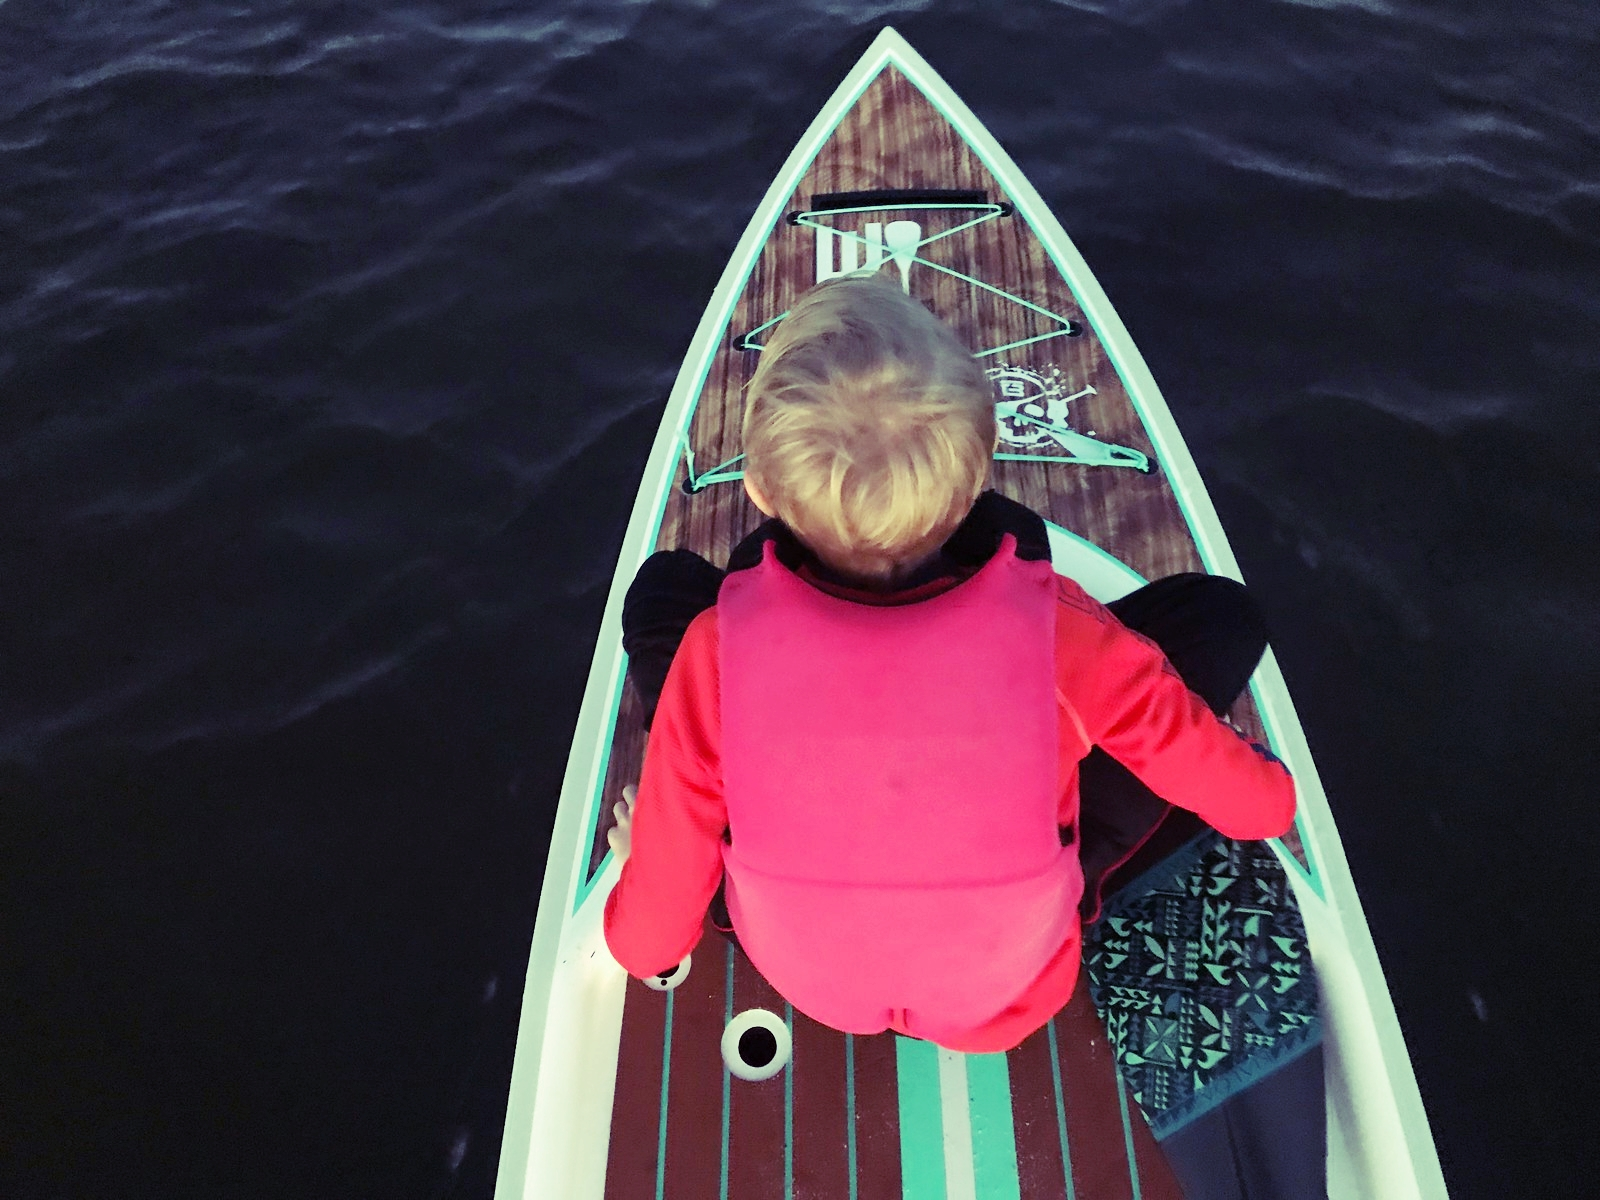 Paddling can be fun for the whole family.